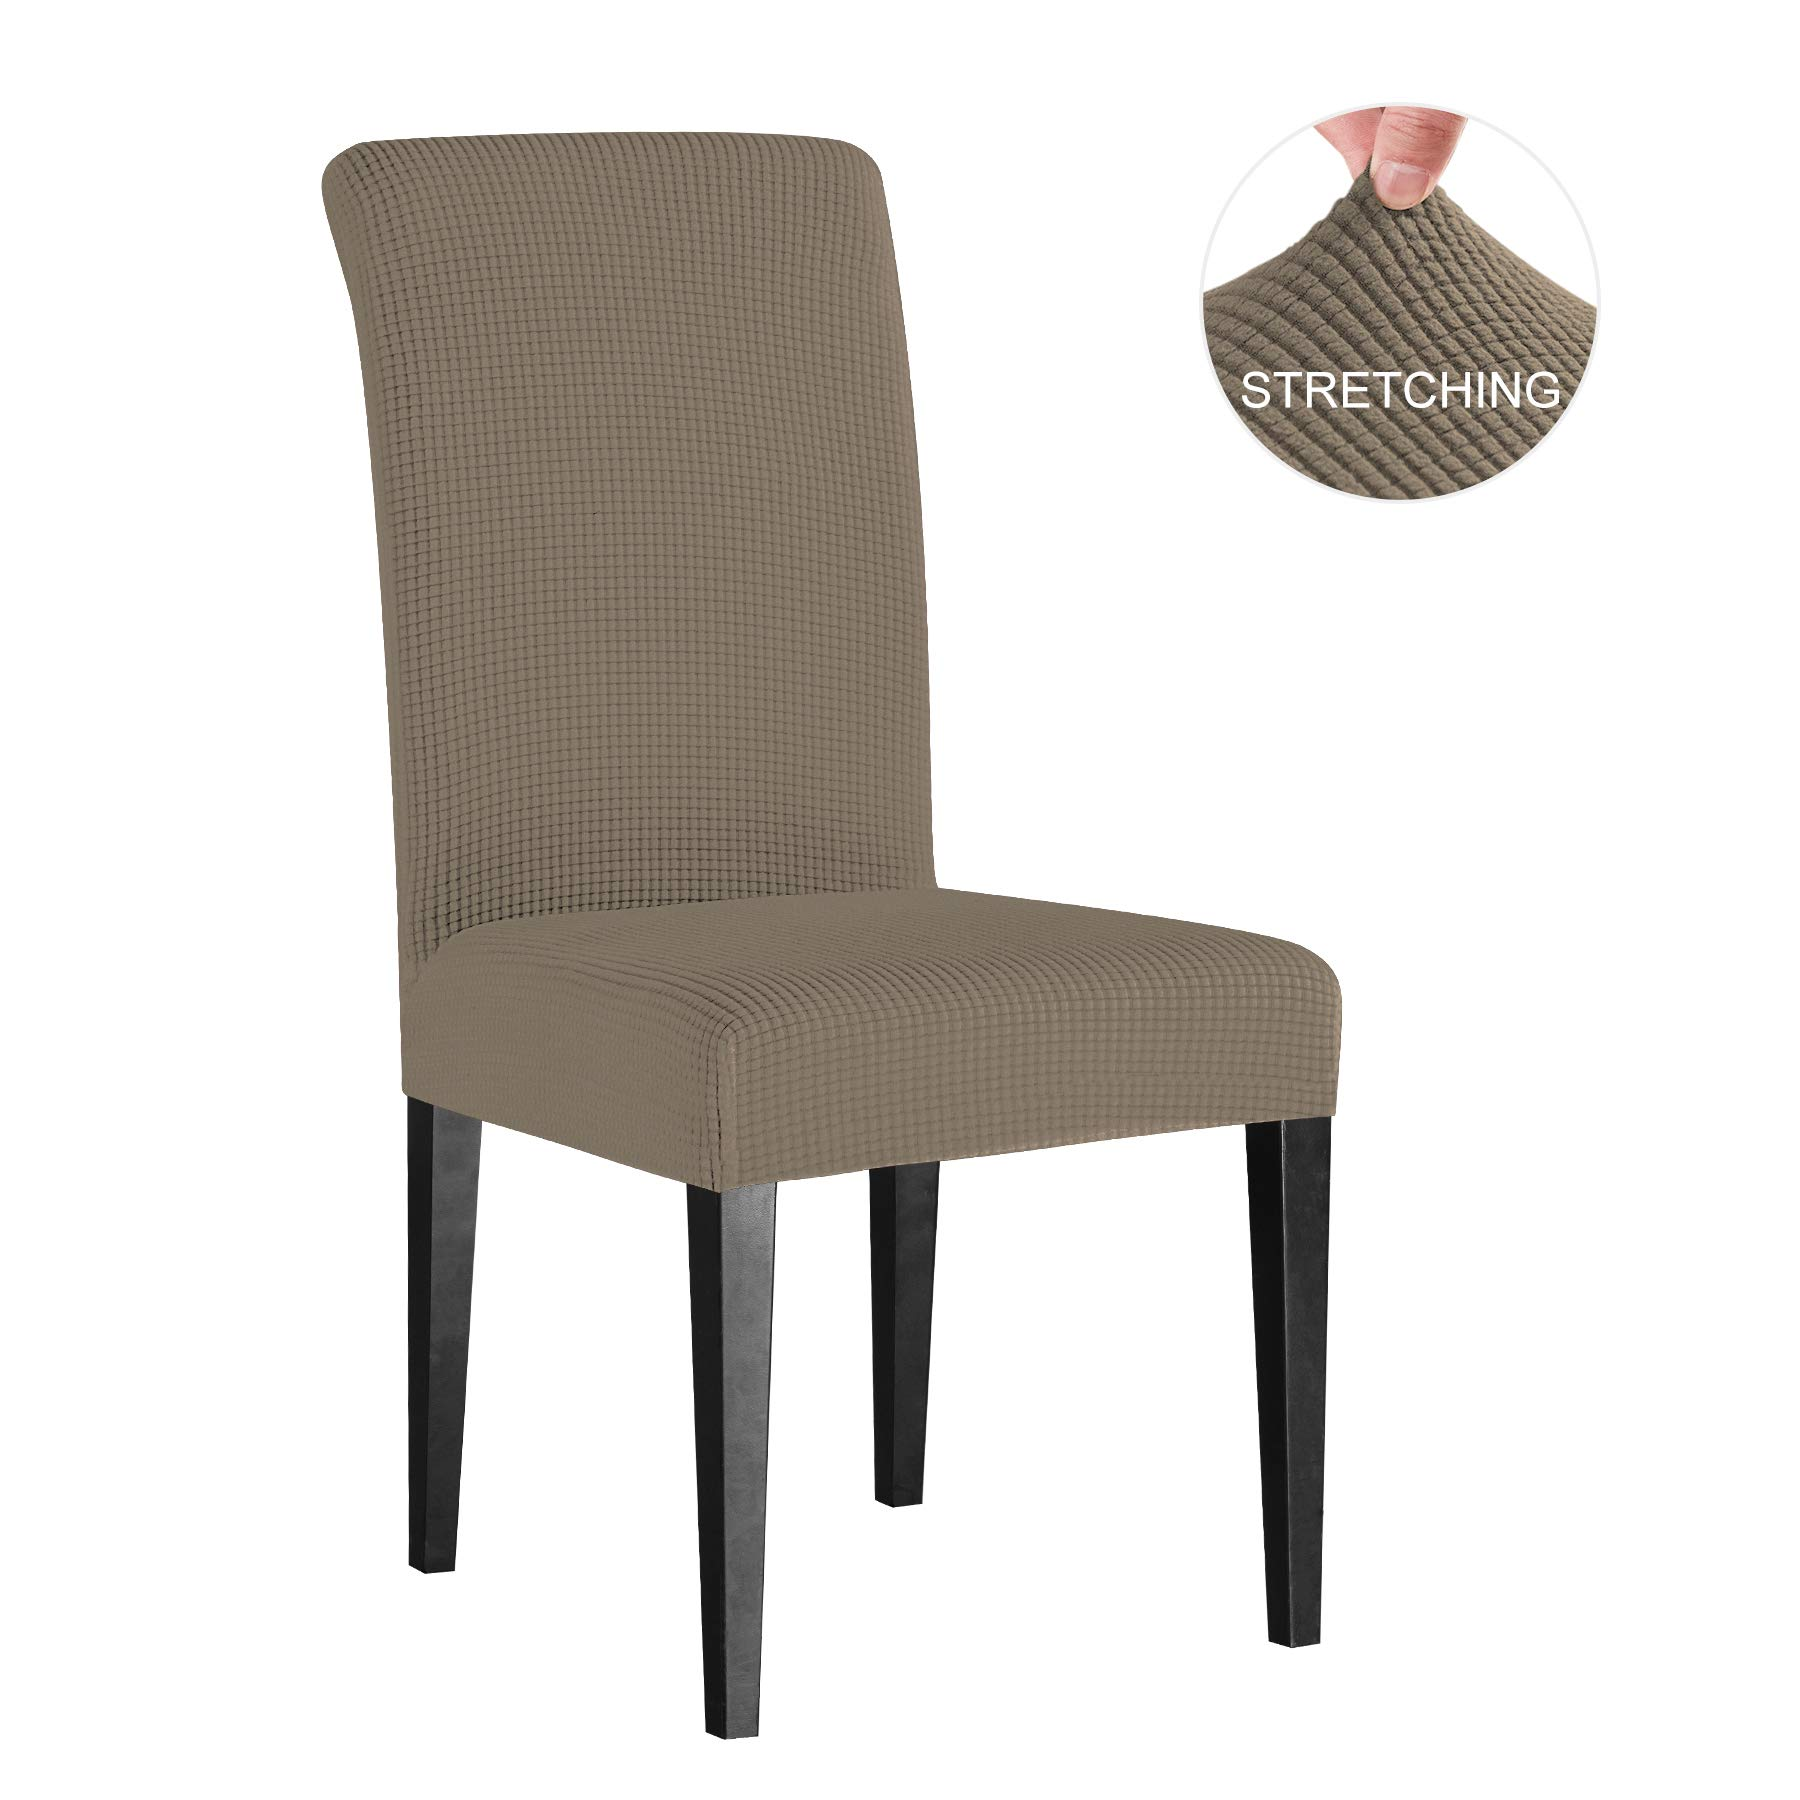 Subrtex Dining Room Chair Slipcovers Sets Stretch Furniture Protector Covers for Armchair Removable Washable Elastic Parsons Seat Case for Restaurant Hotel Ceremony(4 Pieces, Sand Checks) by Subrtex